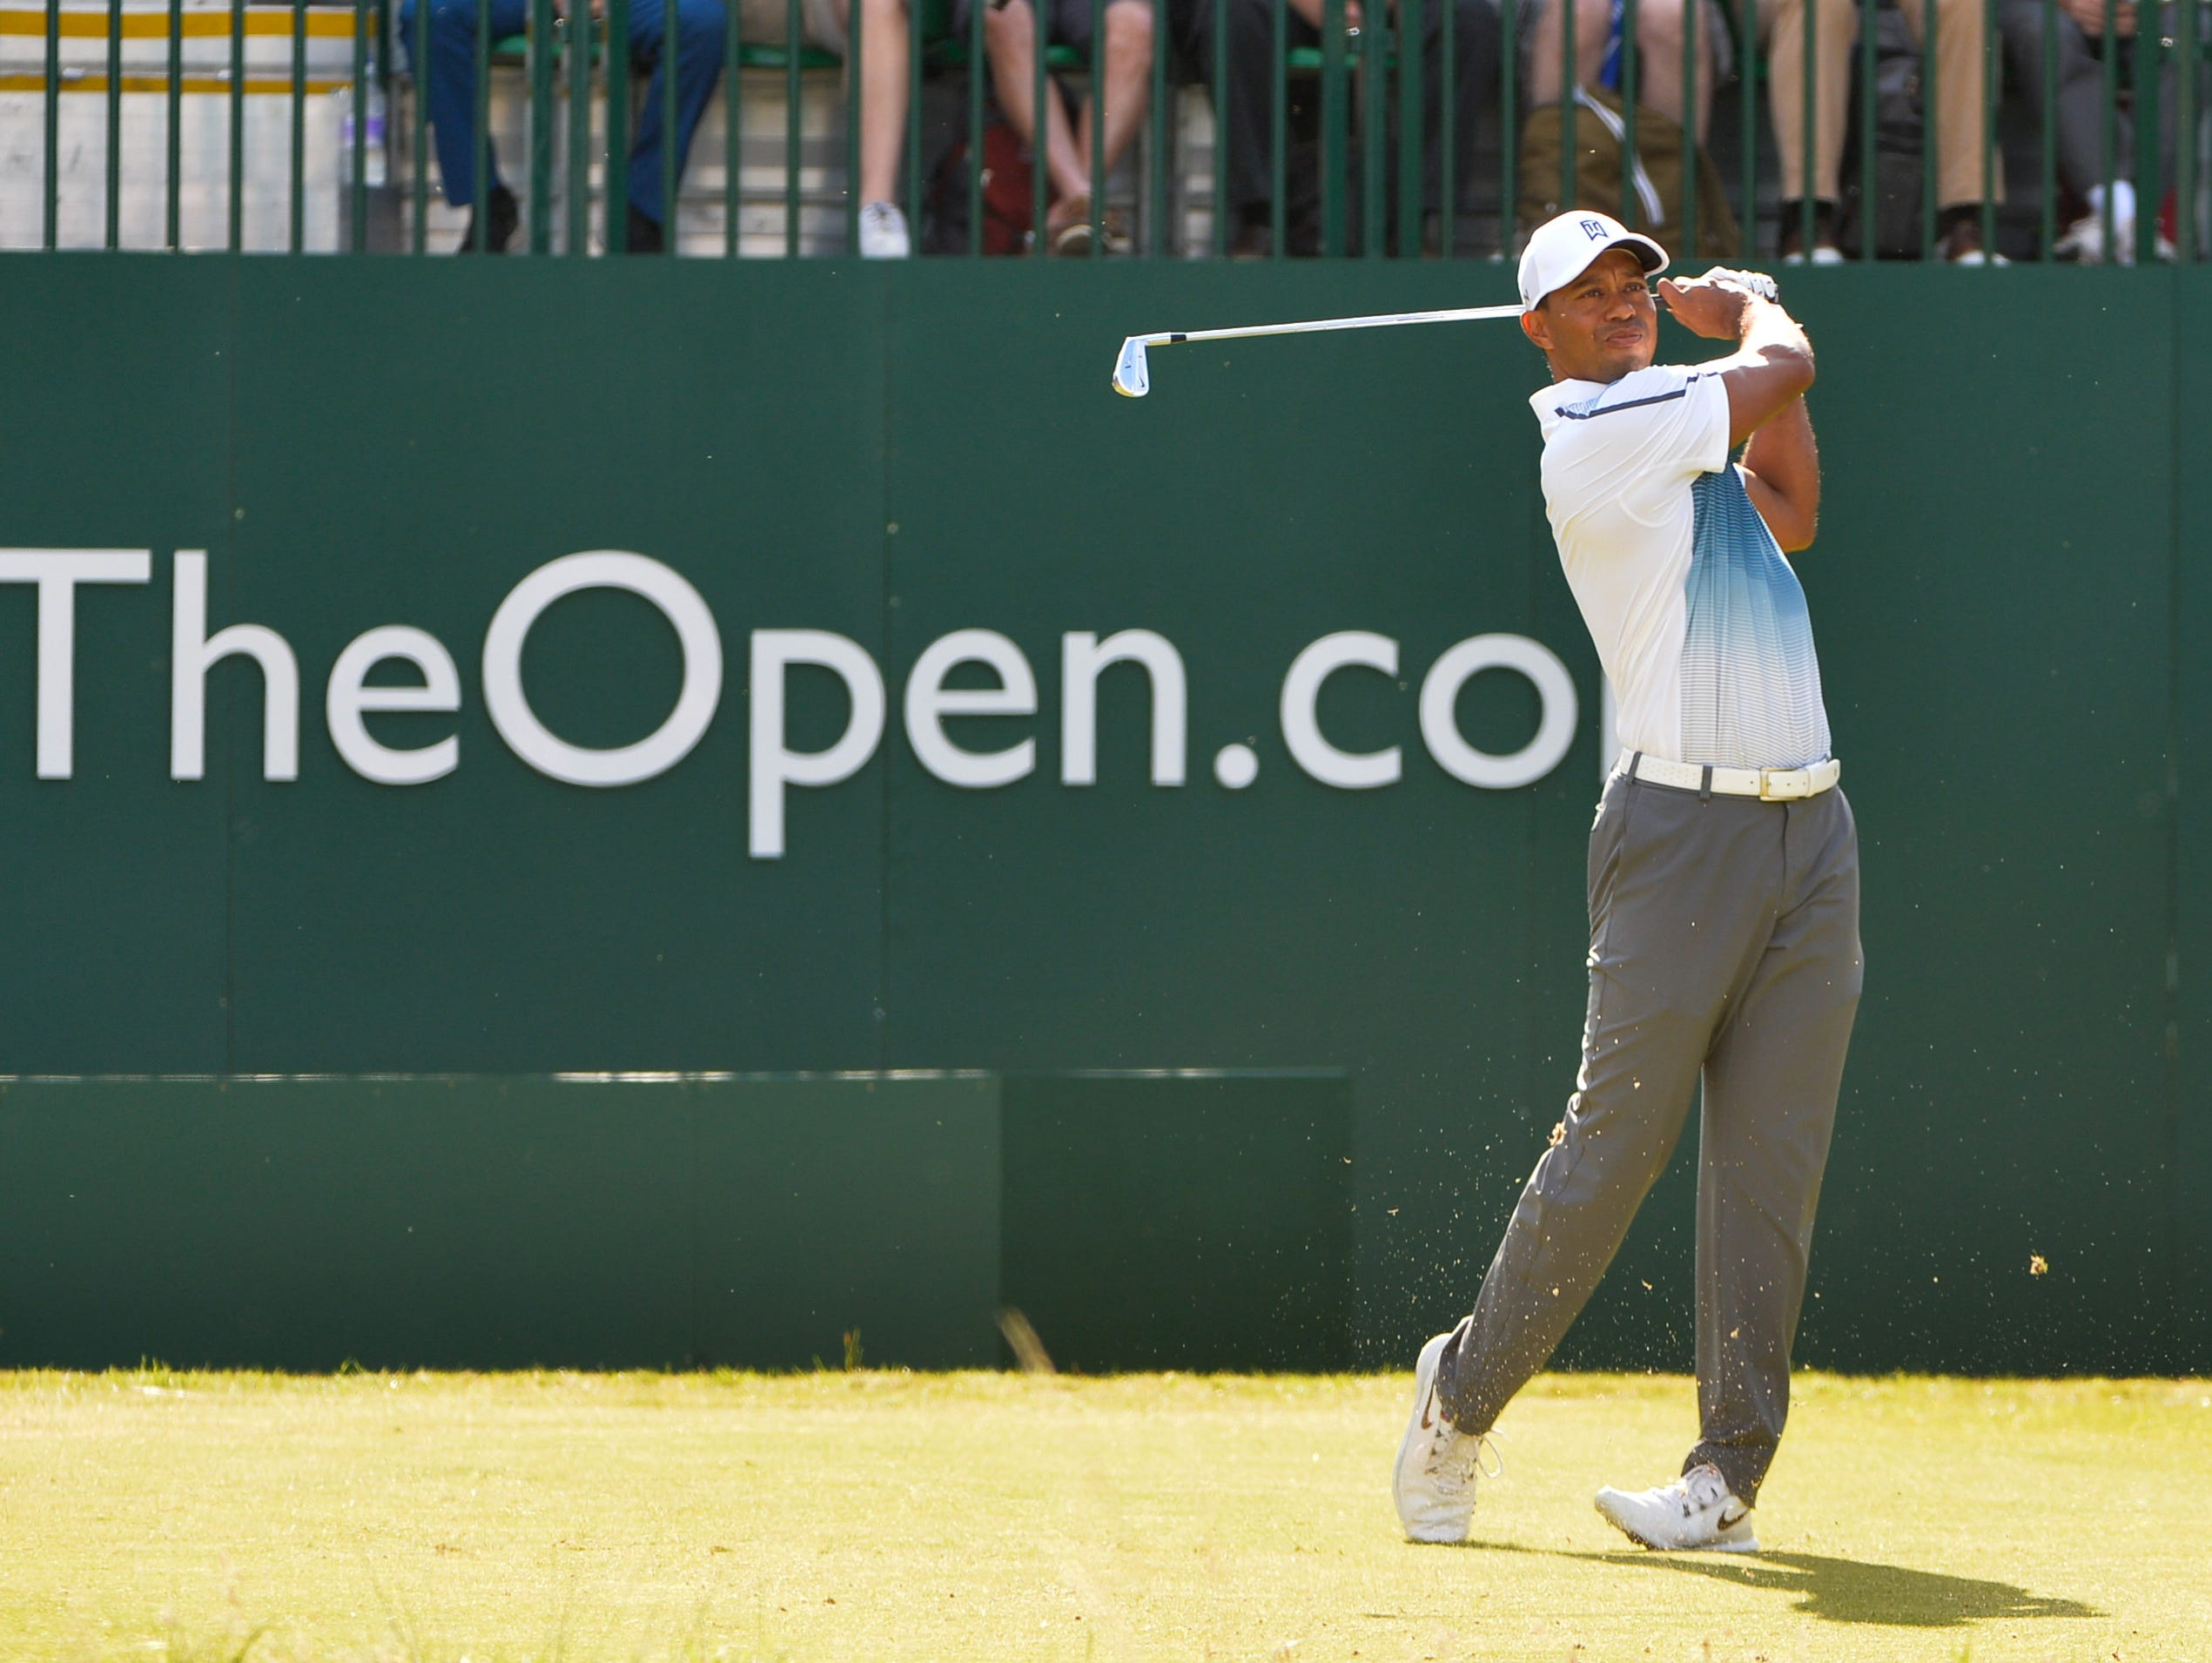 tiger woods u0026 39  champion pedigree shows in first round of open